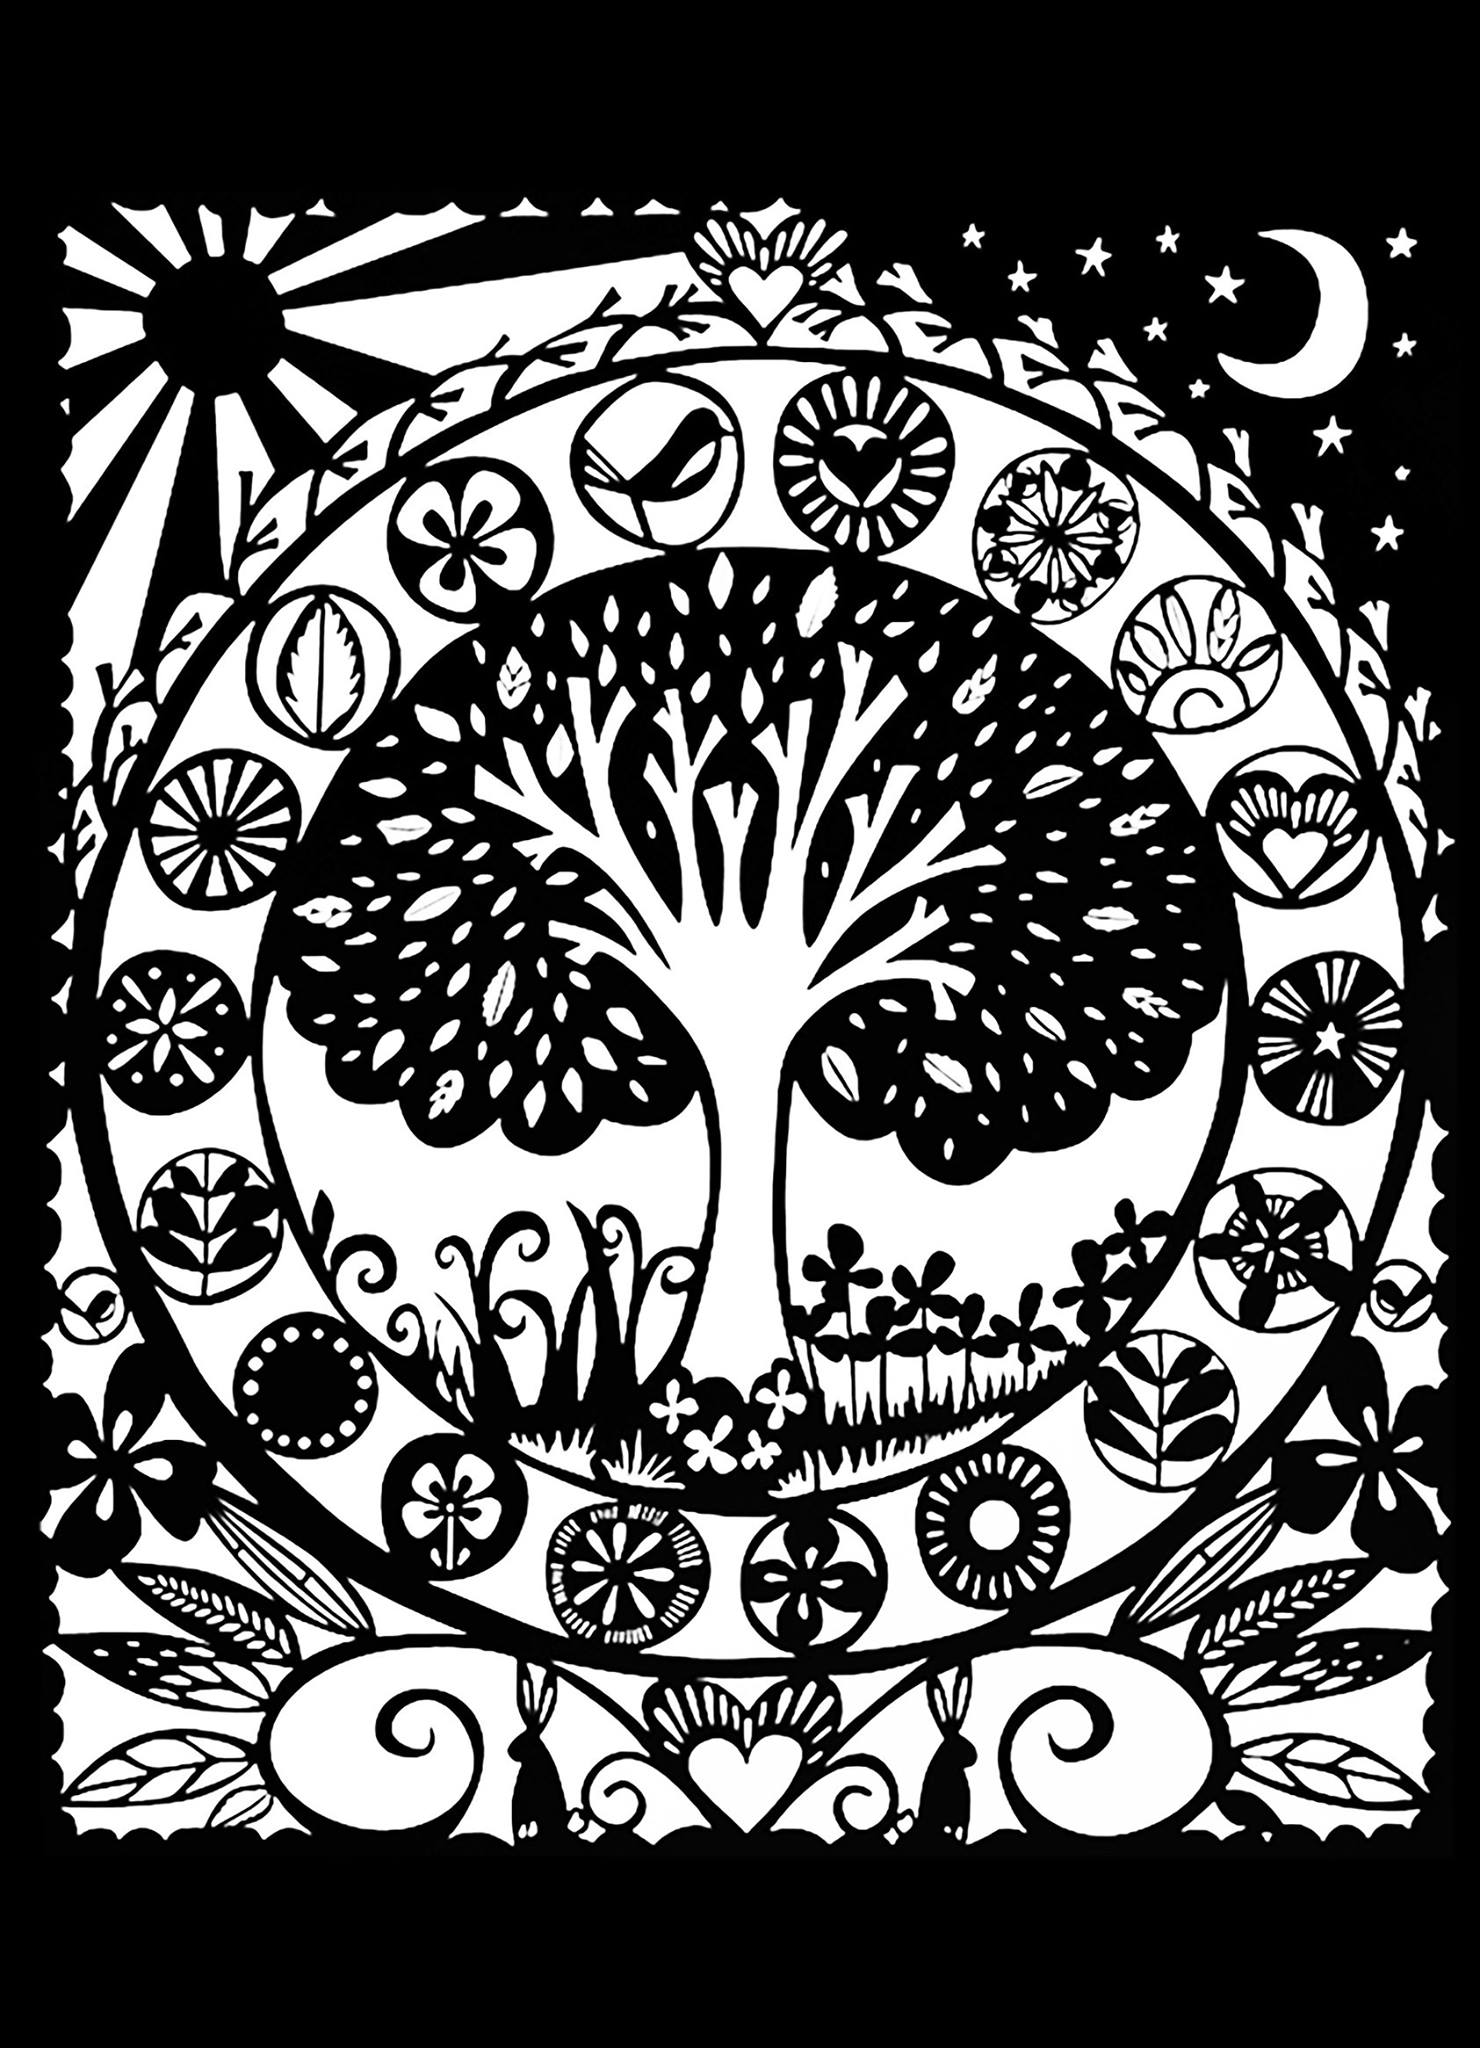 Adult coloring pages black and white ~ Tree black white - Flowers Adult Coloring Pages - Page 2